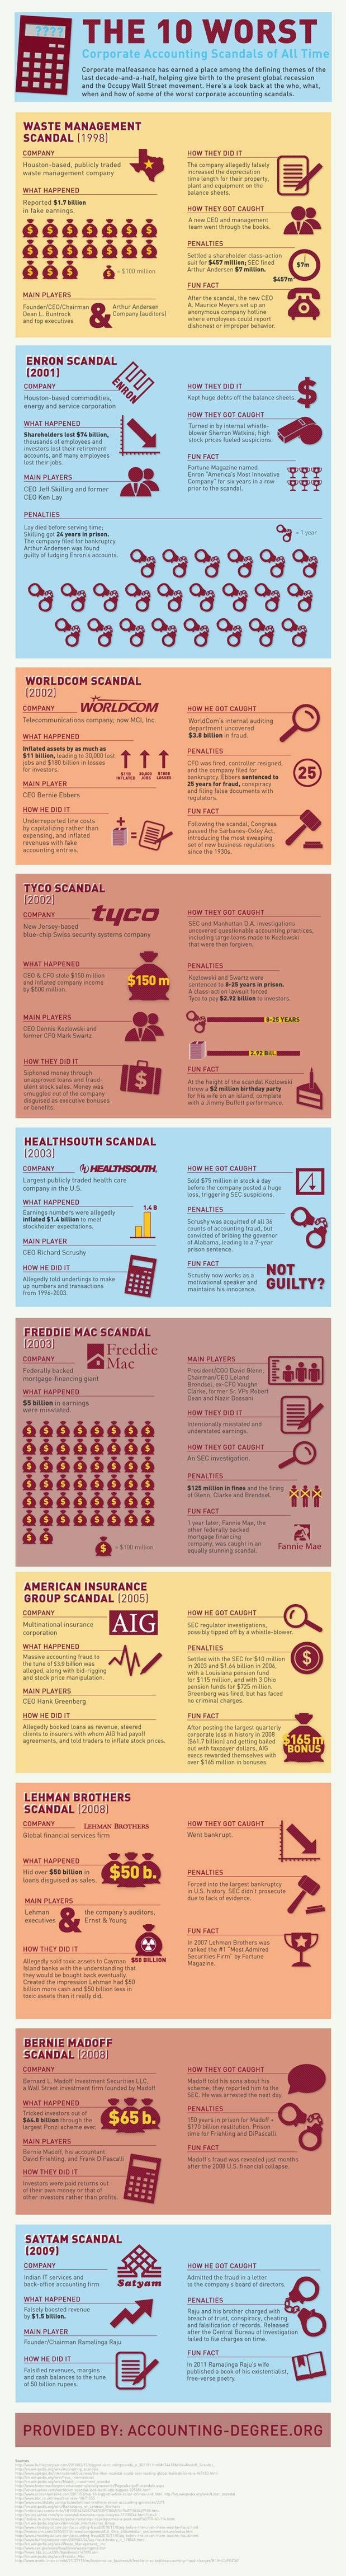 INFOGRAPHIC: The 10 Worst Corporate Finance Scandals